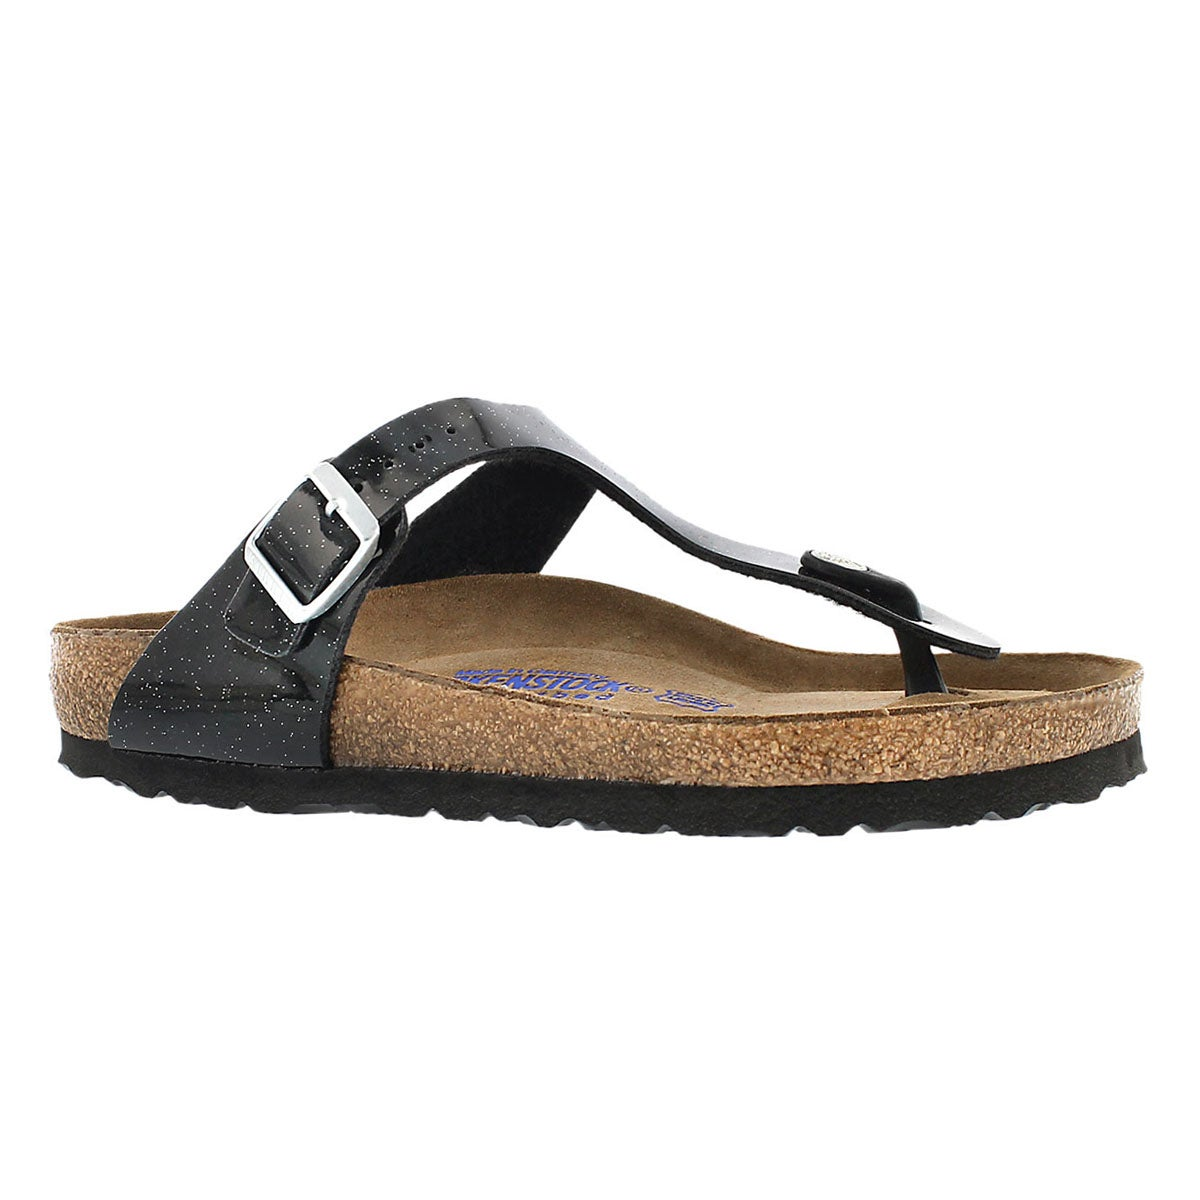 Women's GIZEH SF magic galaxy black sandals